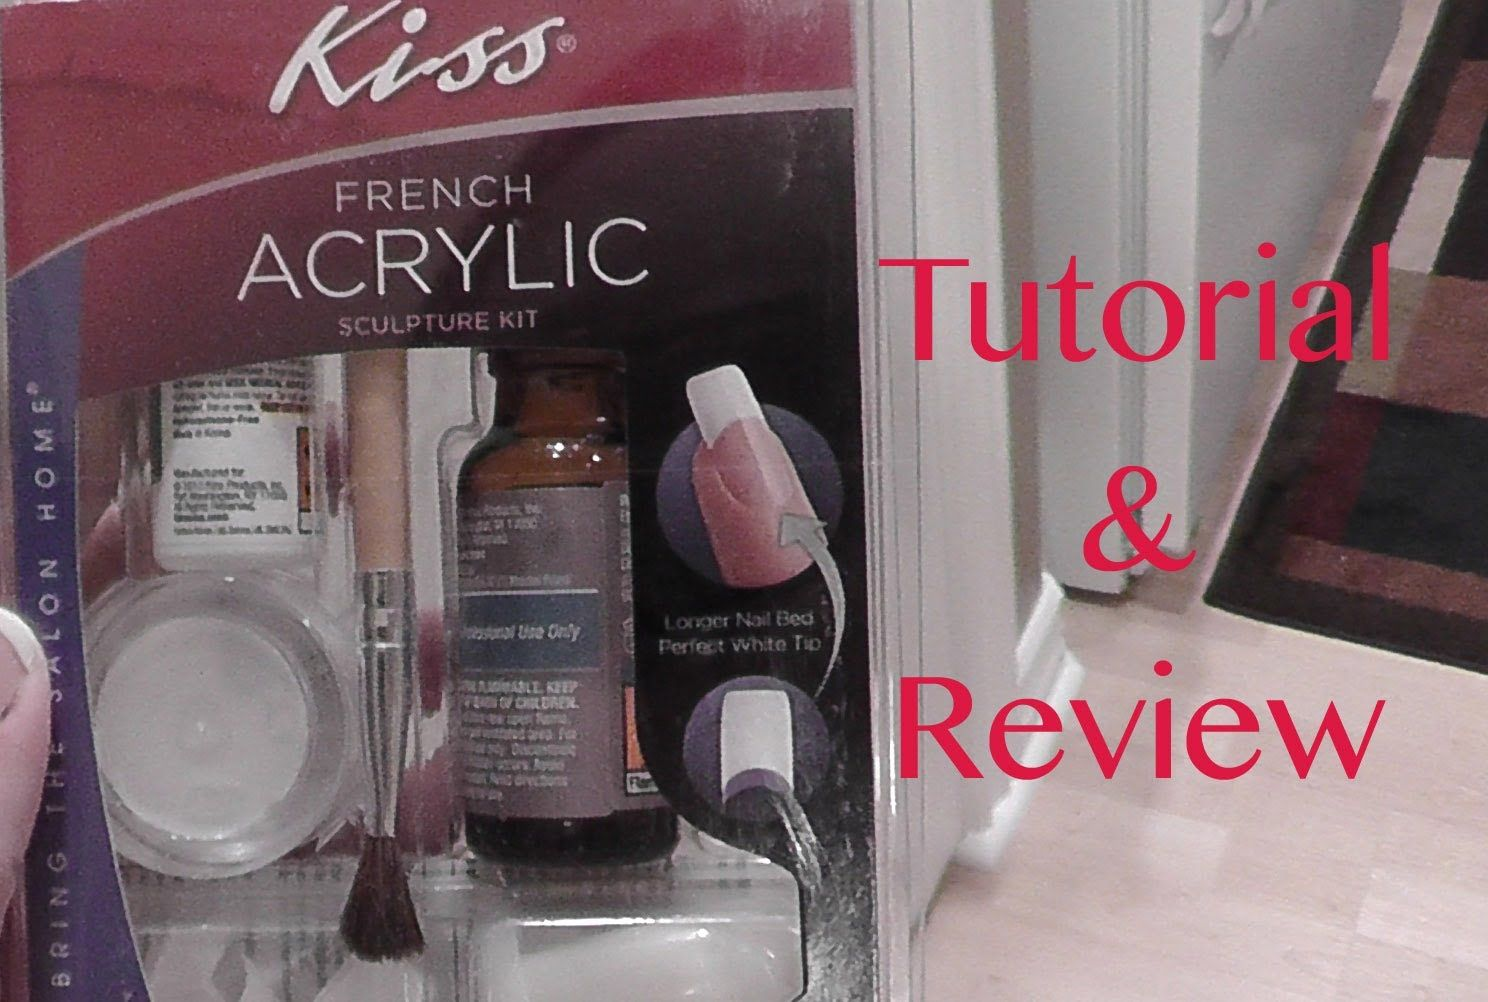 Kiss French Acrylic Sculpture Kit Review Tutorial French Acrylics Acrylic Sculpture Acrylic Nail Kit